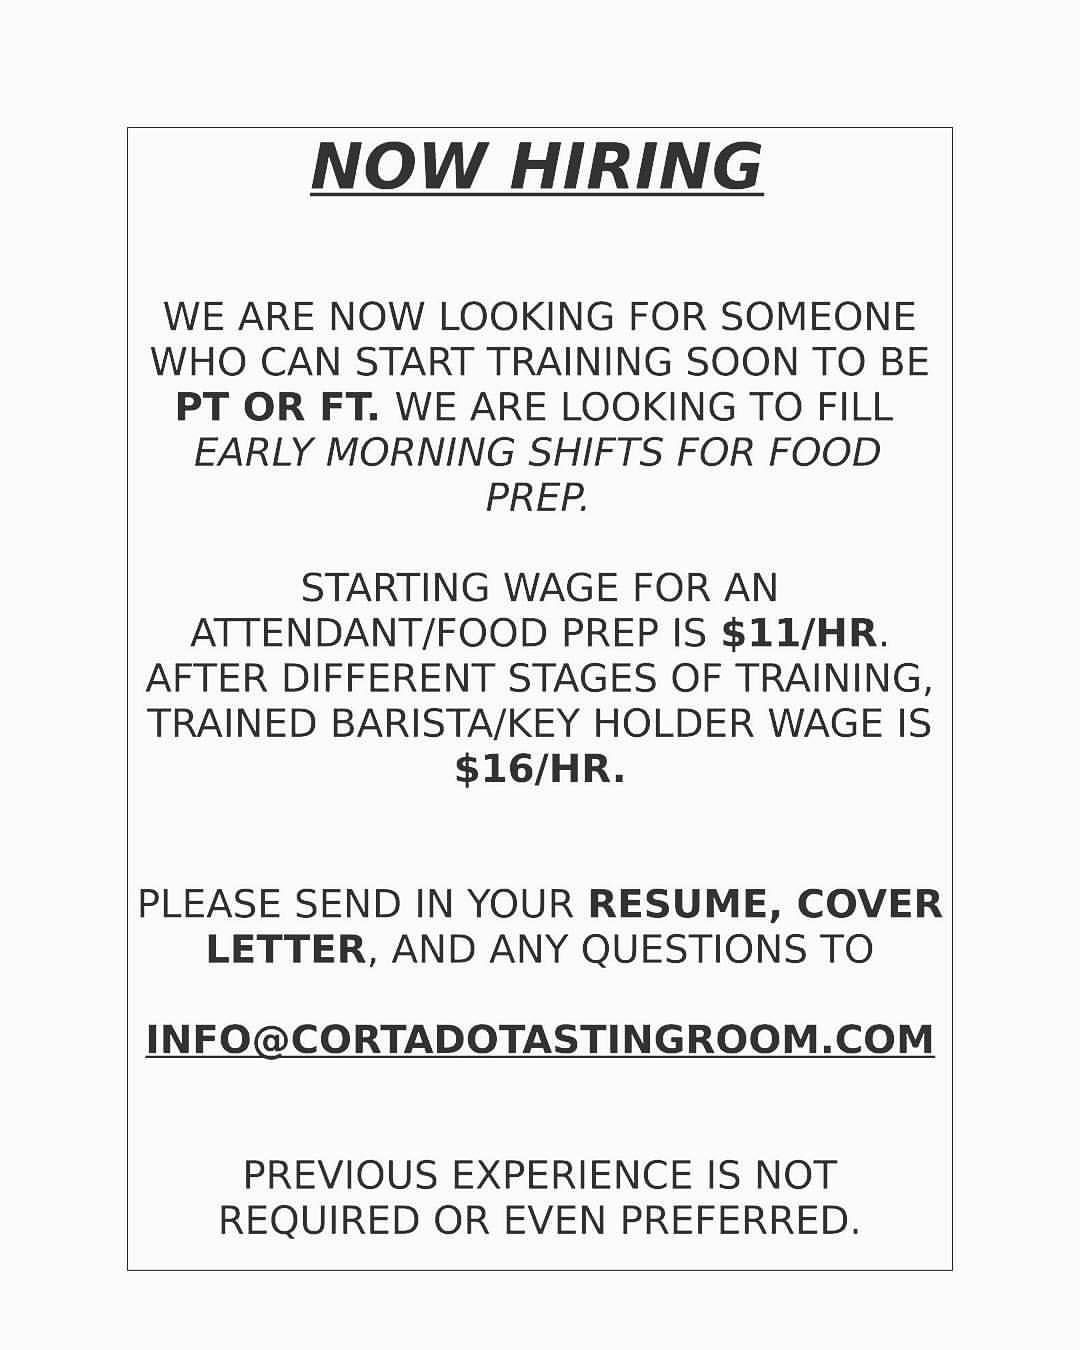 Cortadotastingroom Is Hiring Now Hiring We Are Looking For